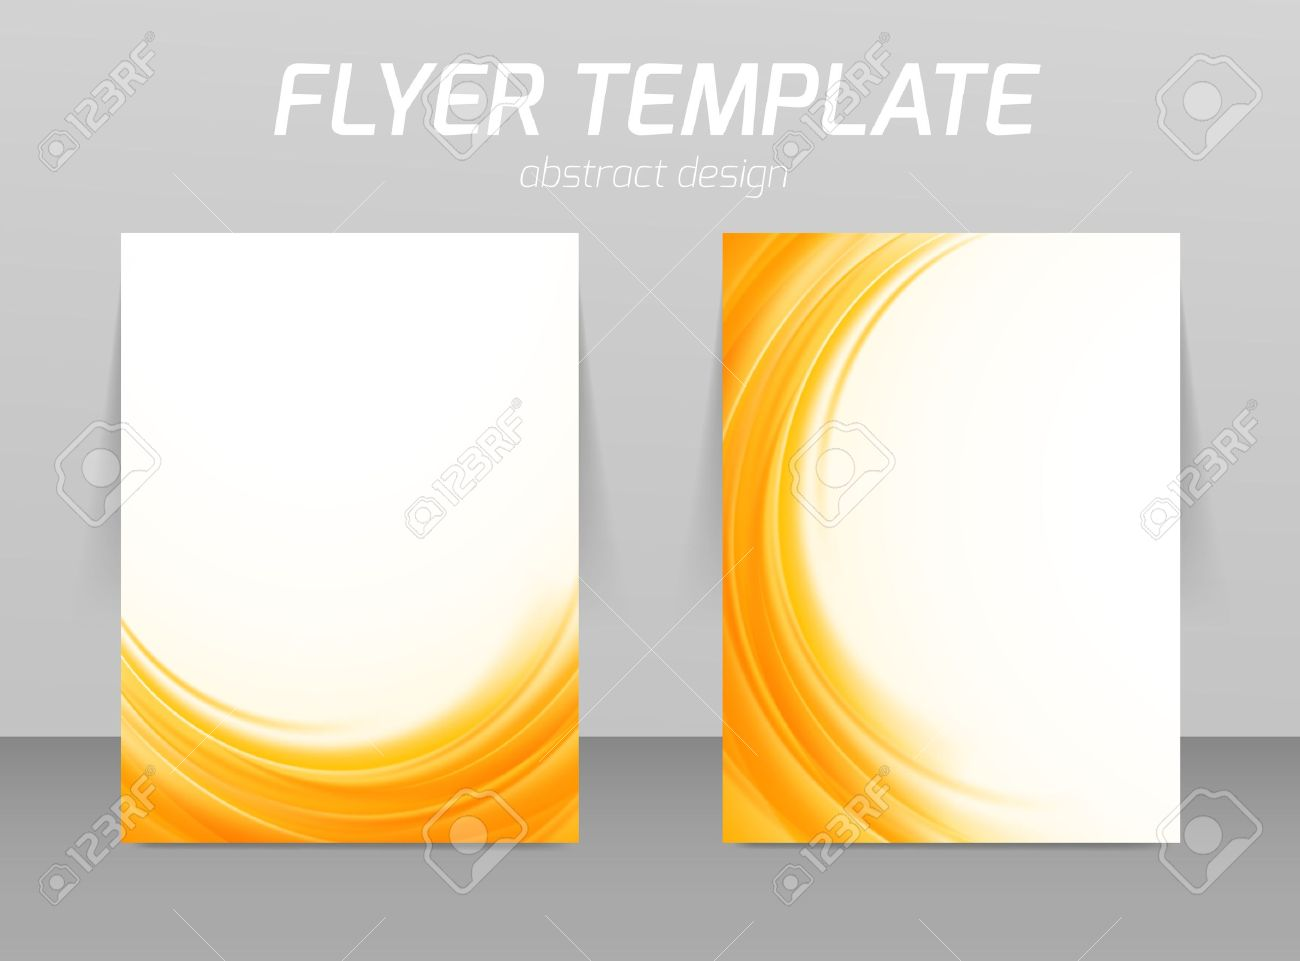 Abstract Flyer Template Soft Orange Wave Design Royalty Free.